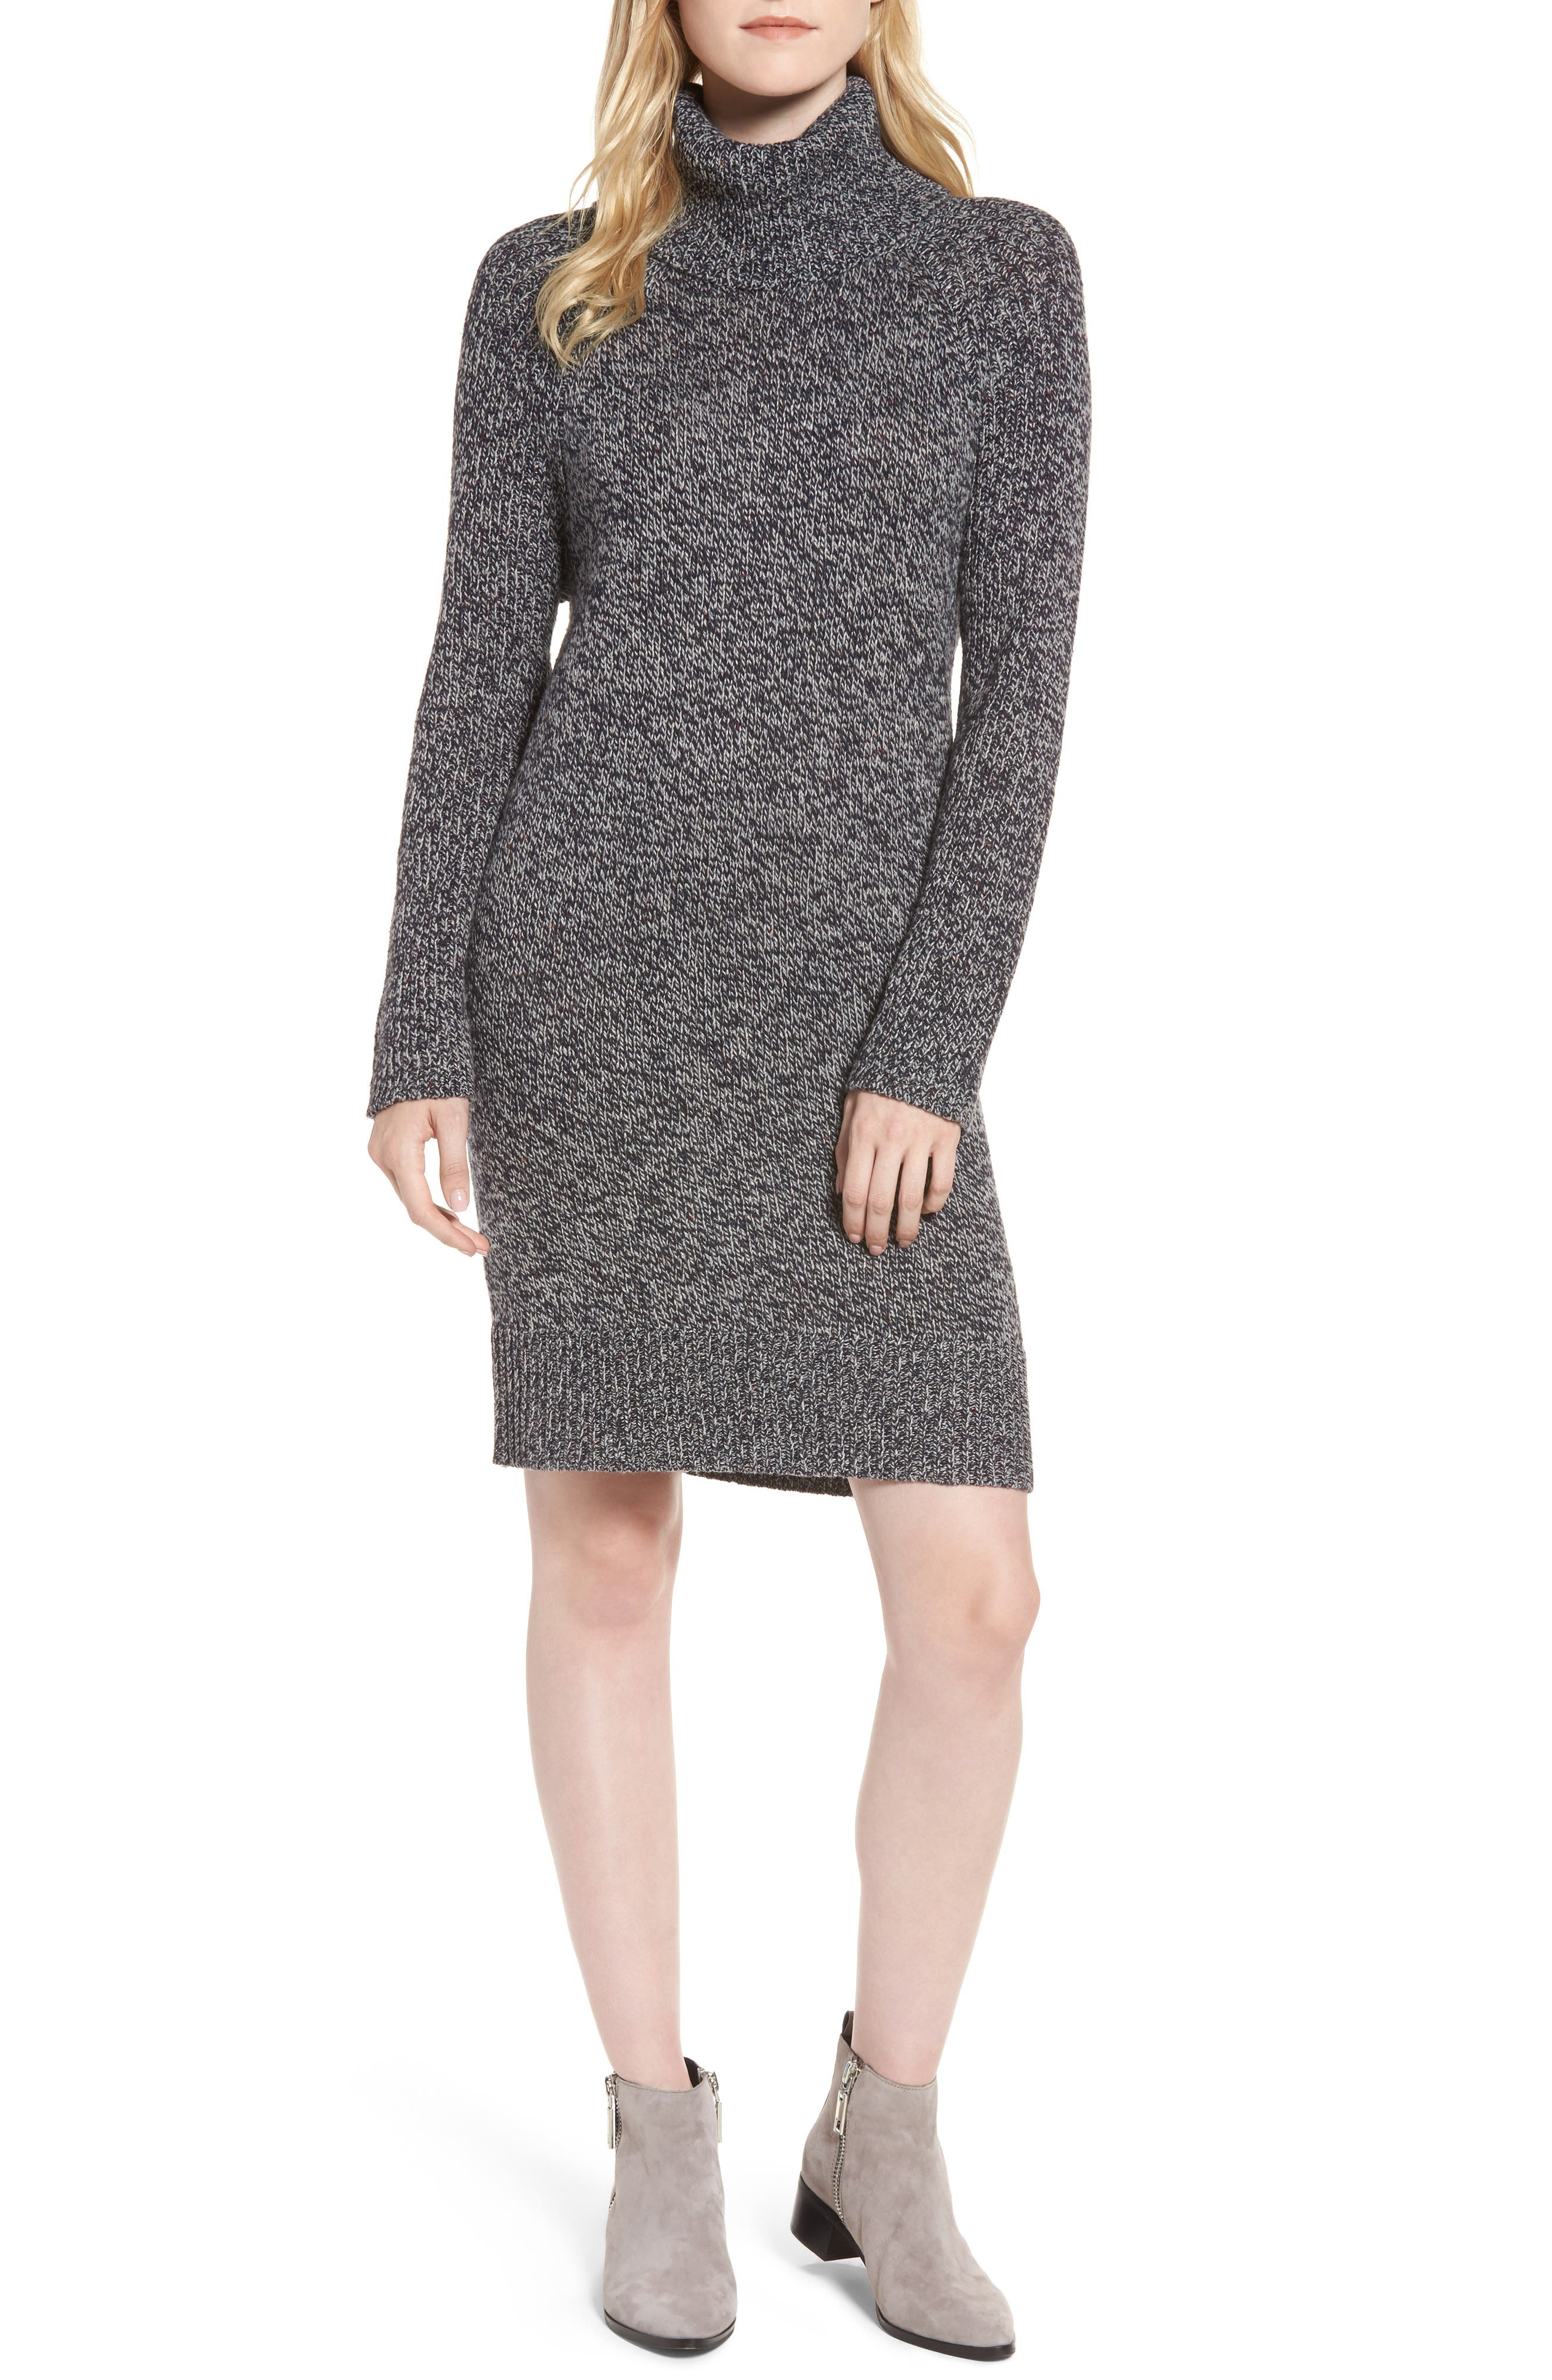 Turtleneck Sweater Dress,                         Main,                         color, Navy Grey Heather Neppy Marl